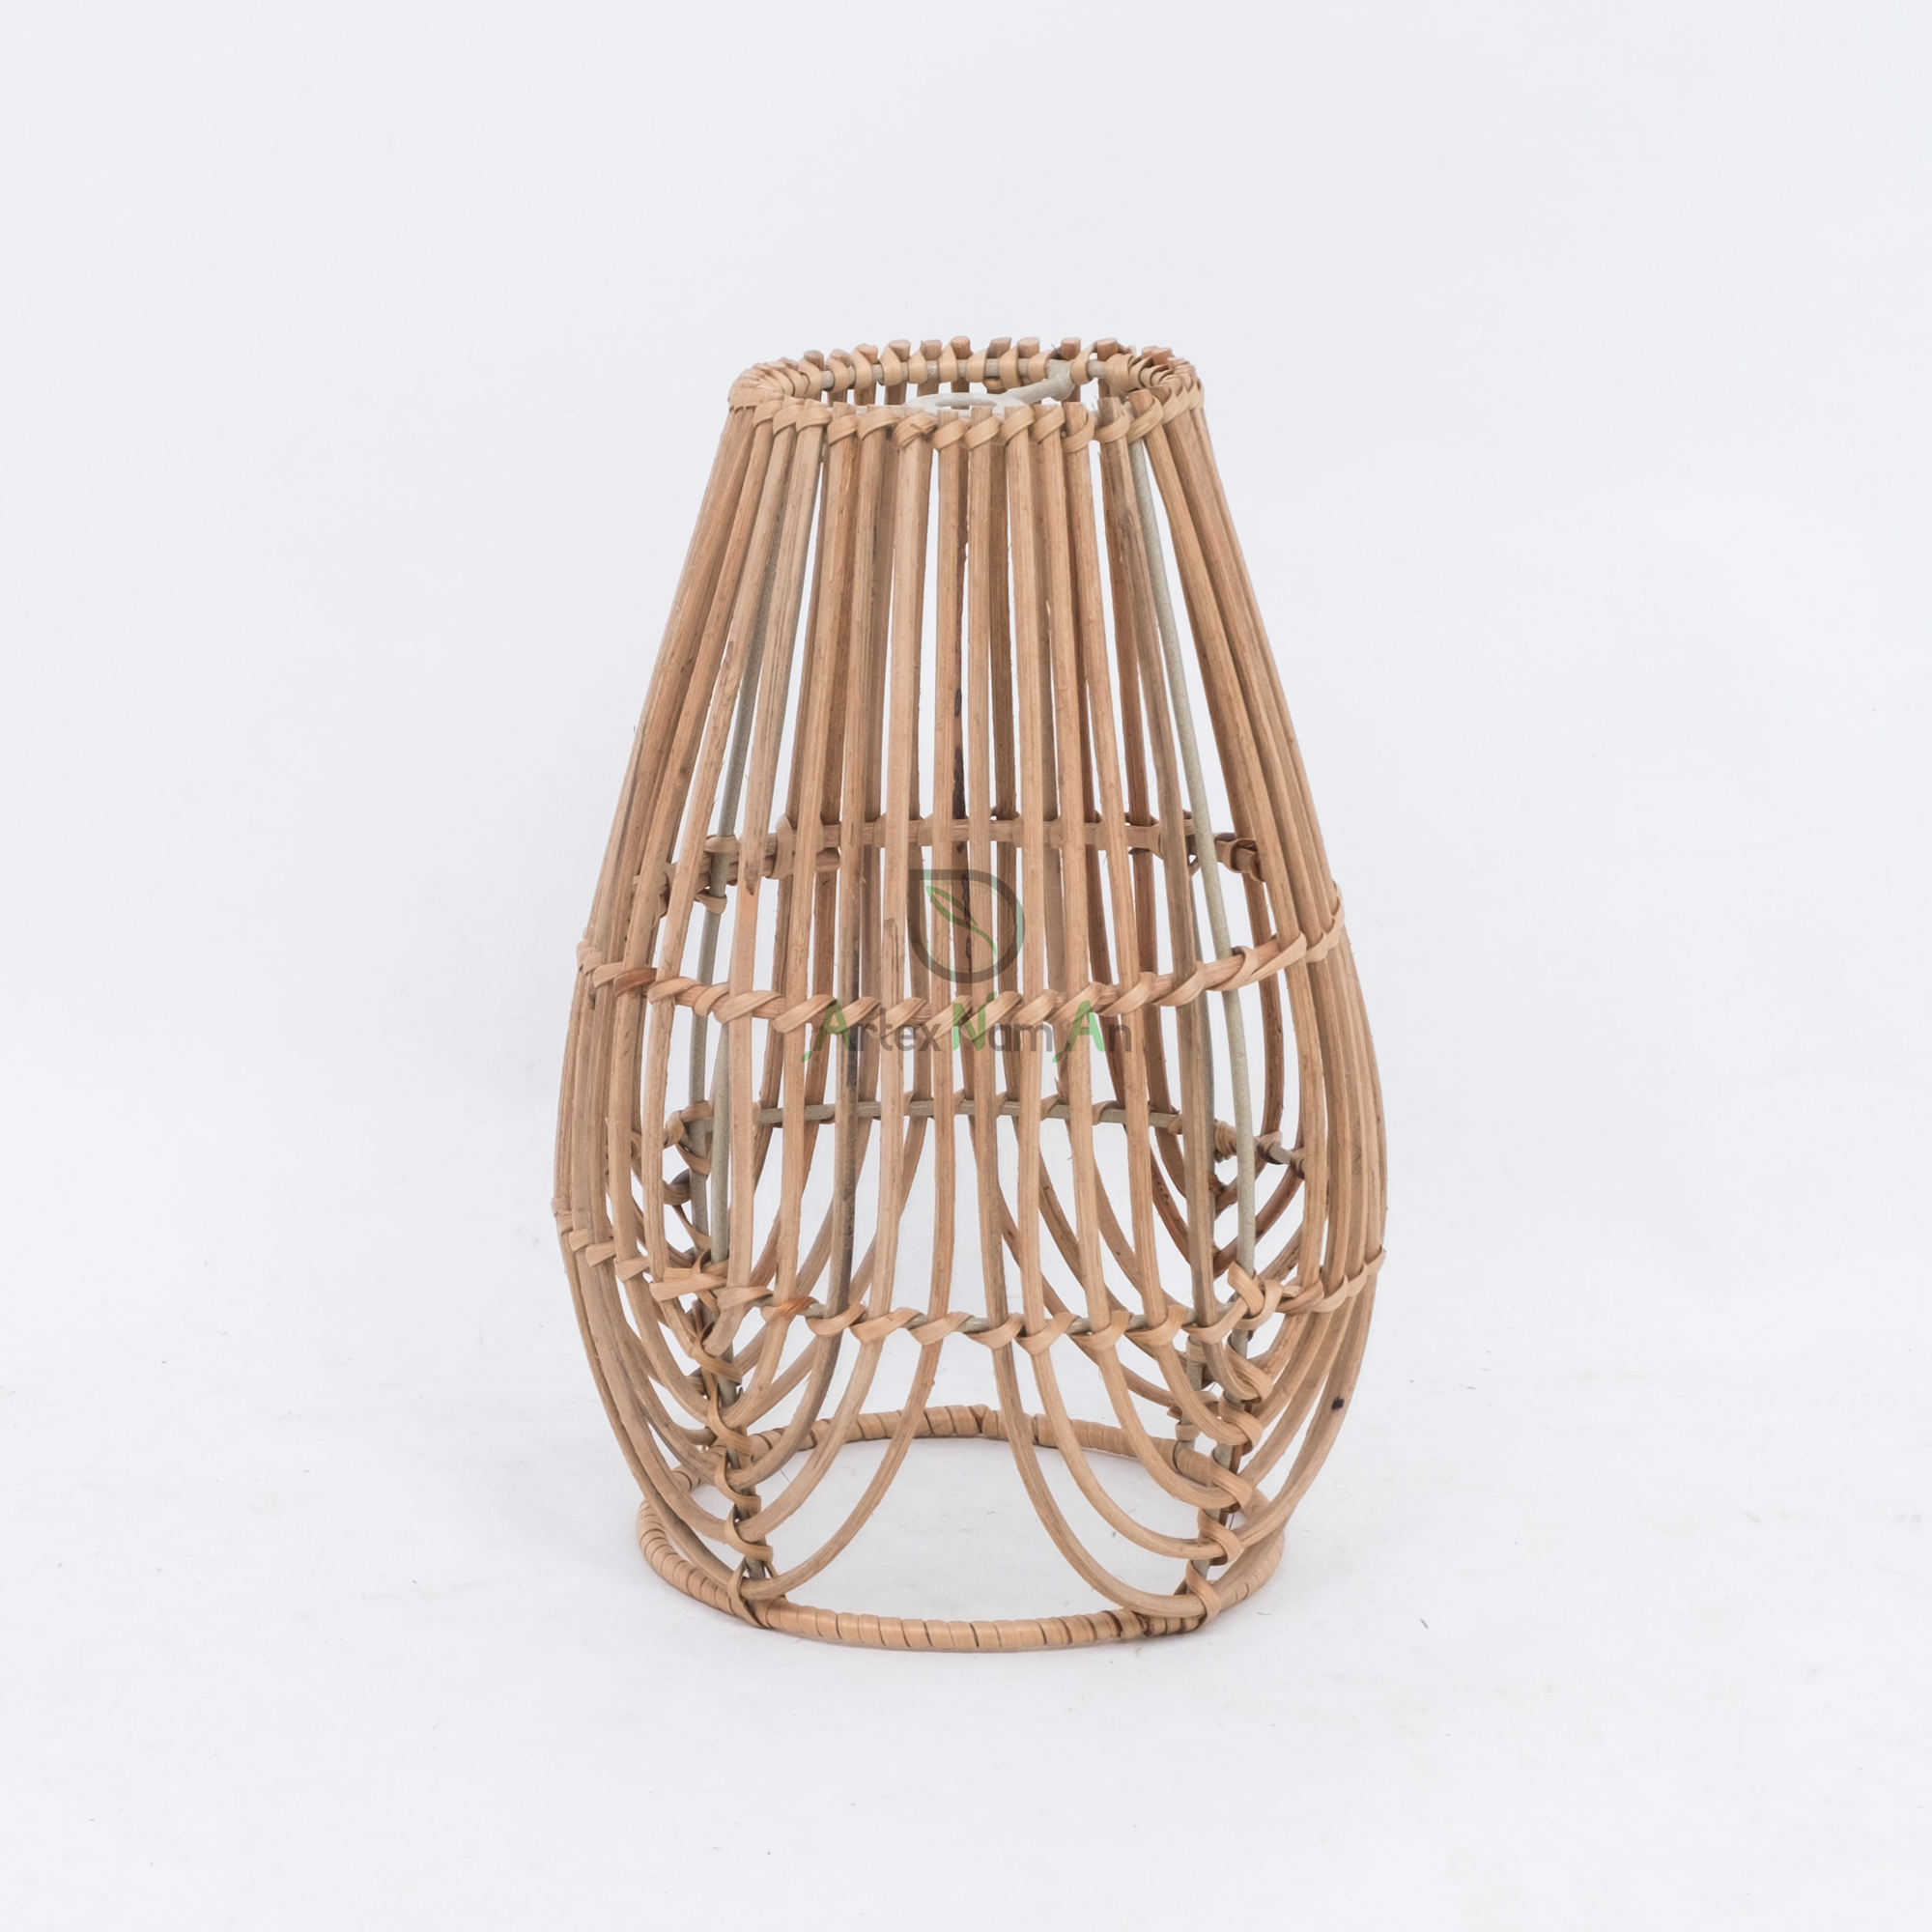 New Design Rattan Lamp Shade/Lanterns in natural color